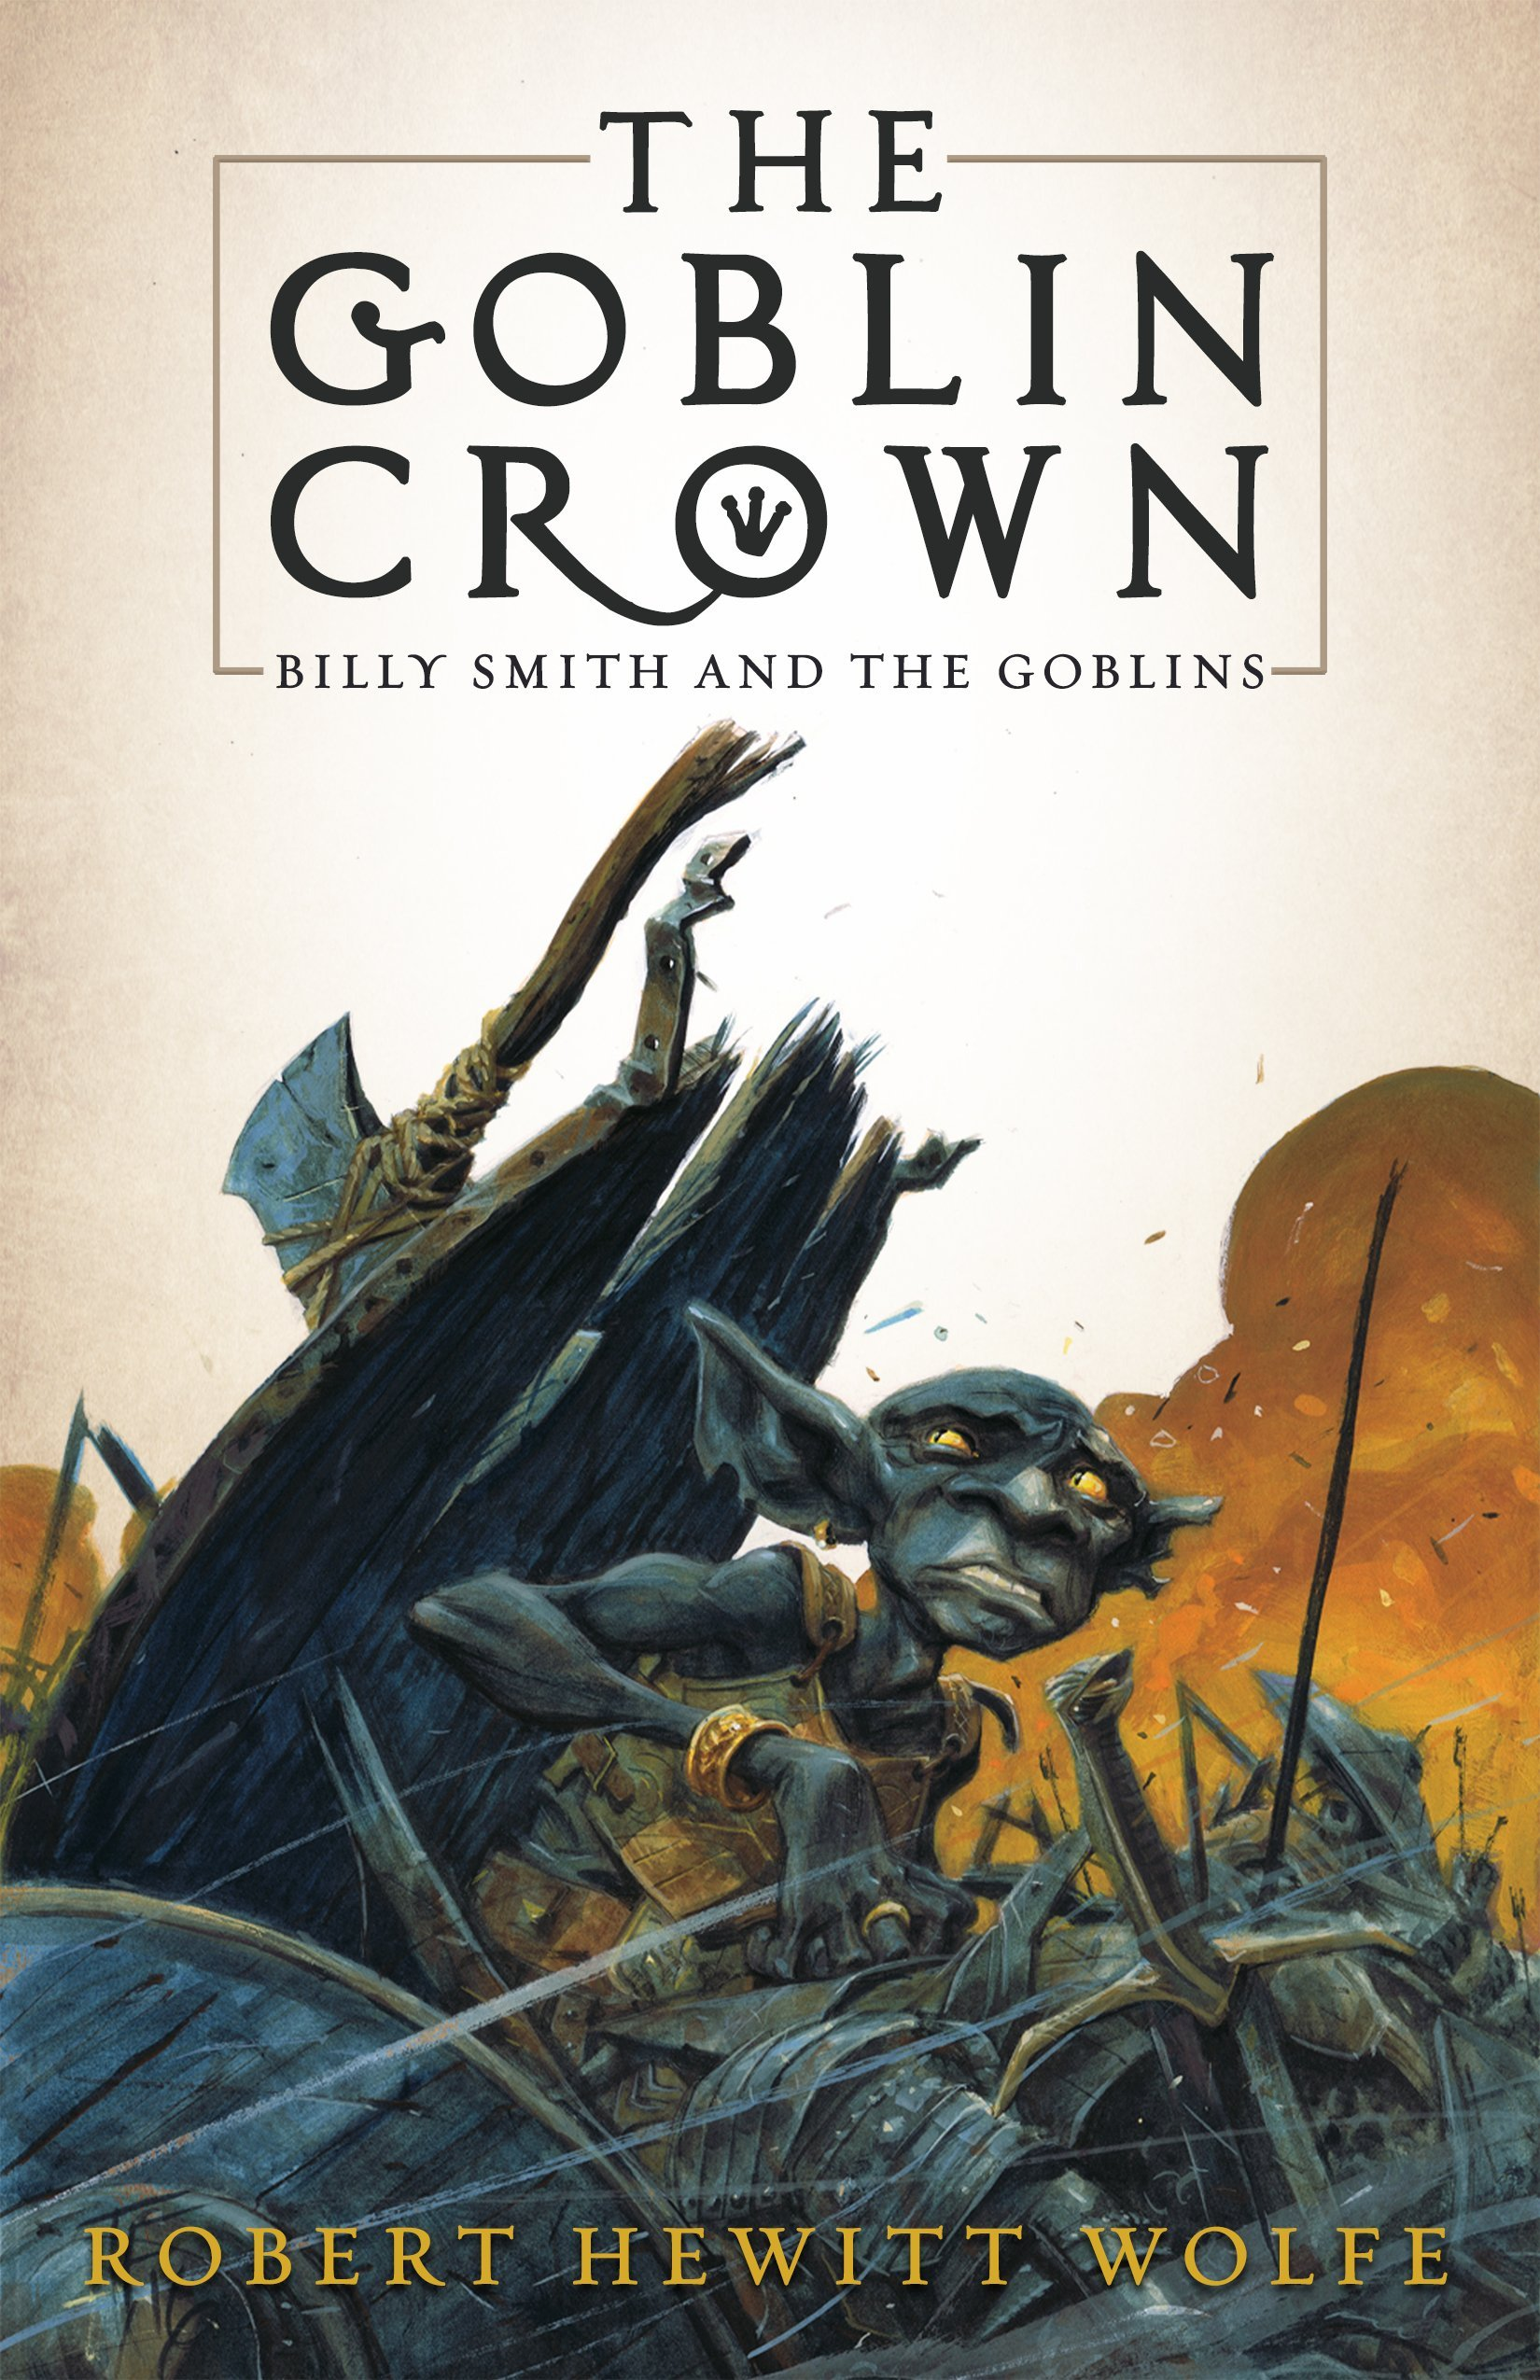 Amazon com: The Goblin Crown: Billy Smith and the Goblins